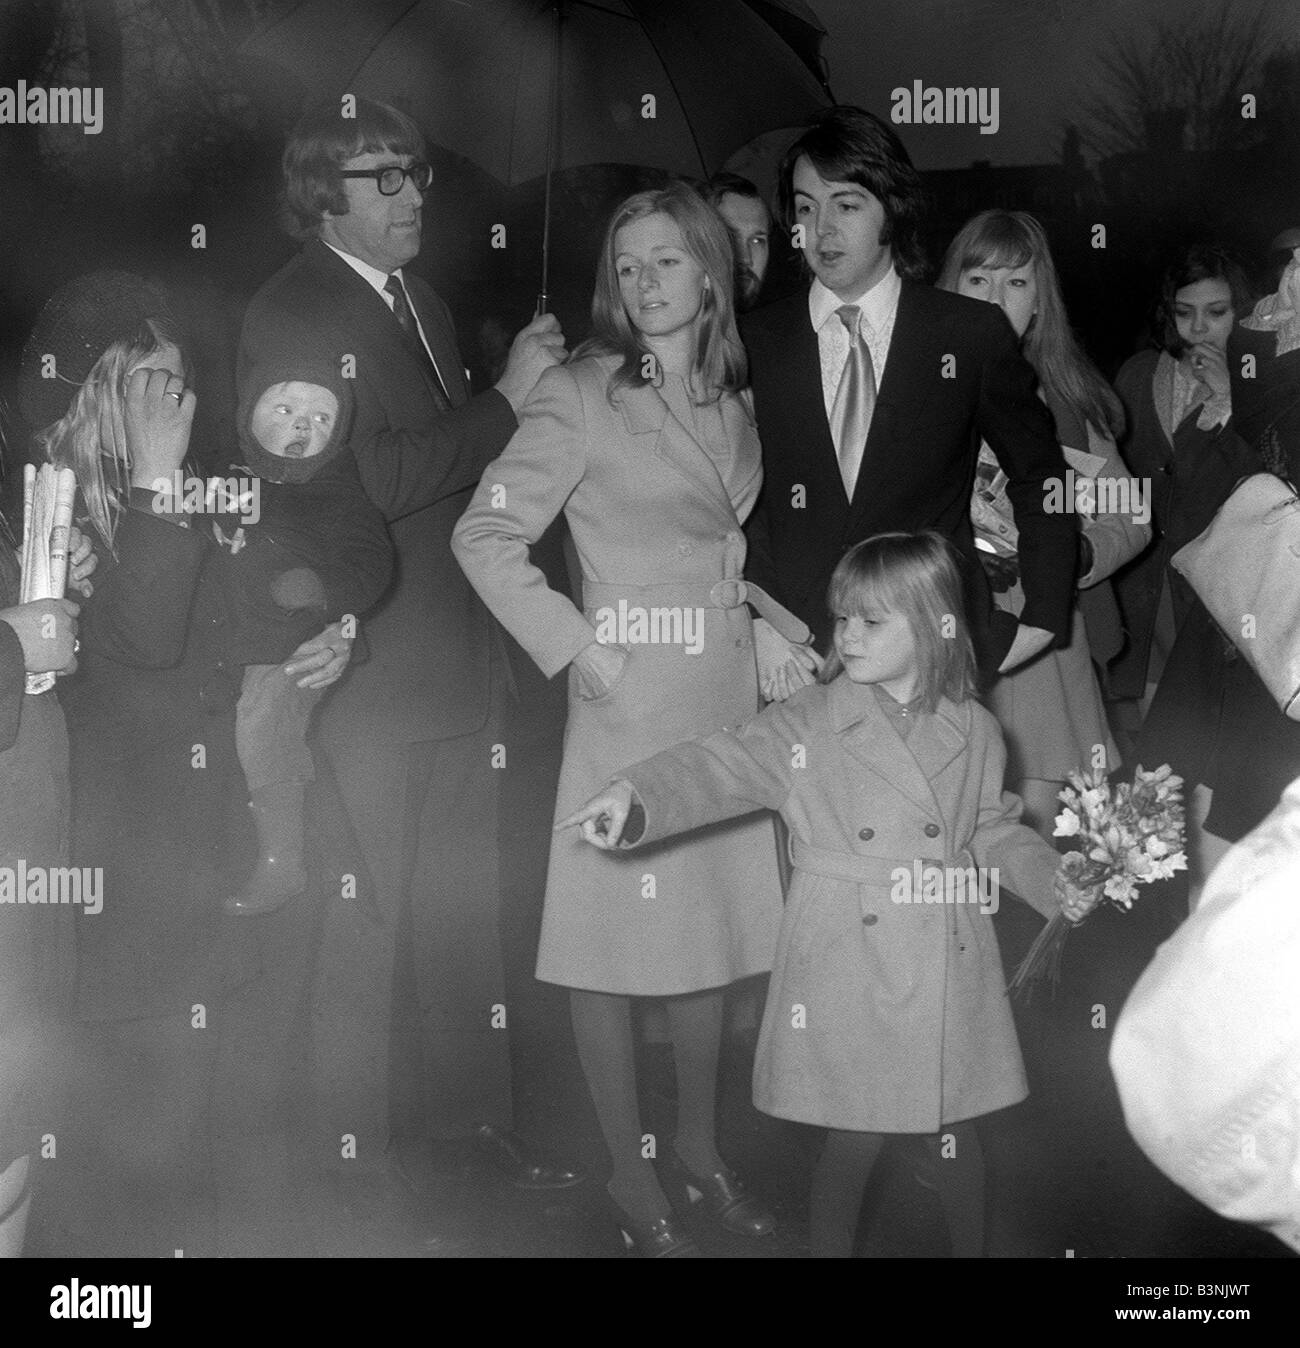 Paul McCartney Arrives With Wife Linda And Her Daughter Heather Aged 6 For Wedding Reception At